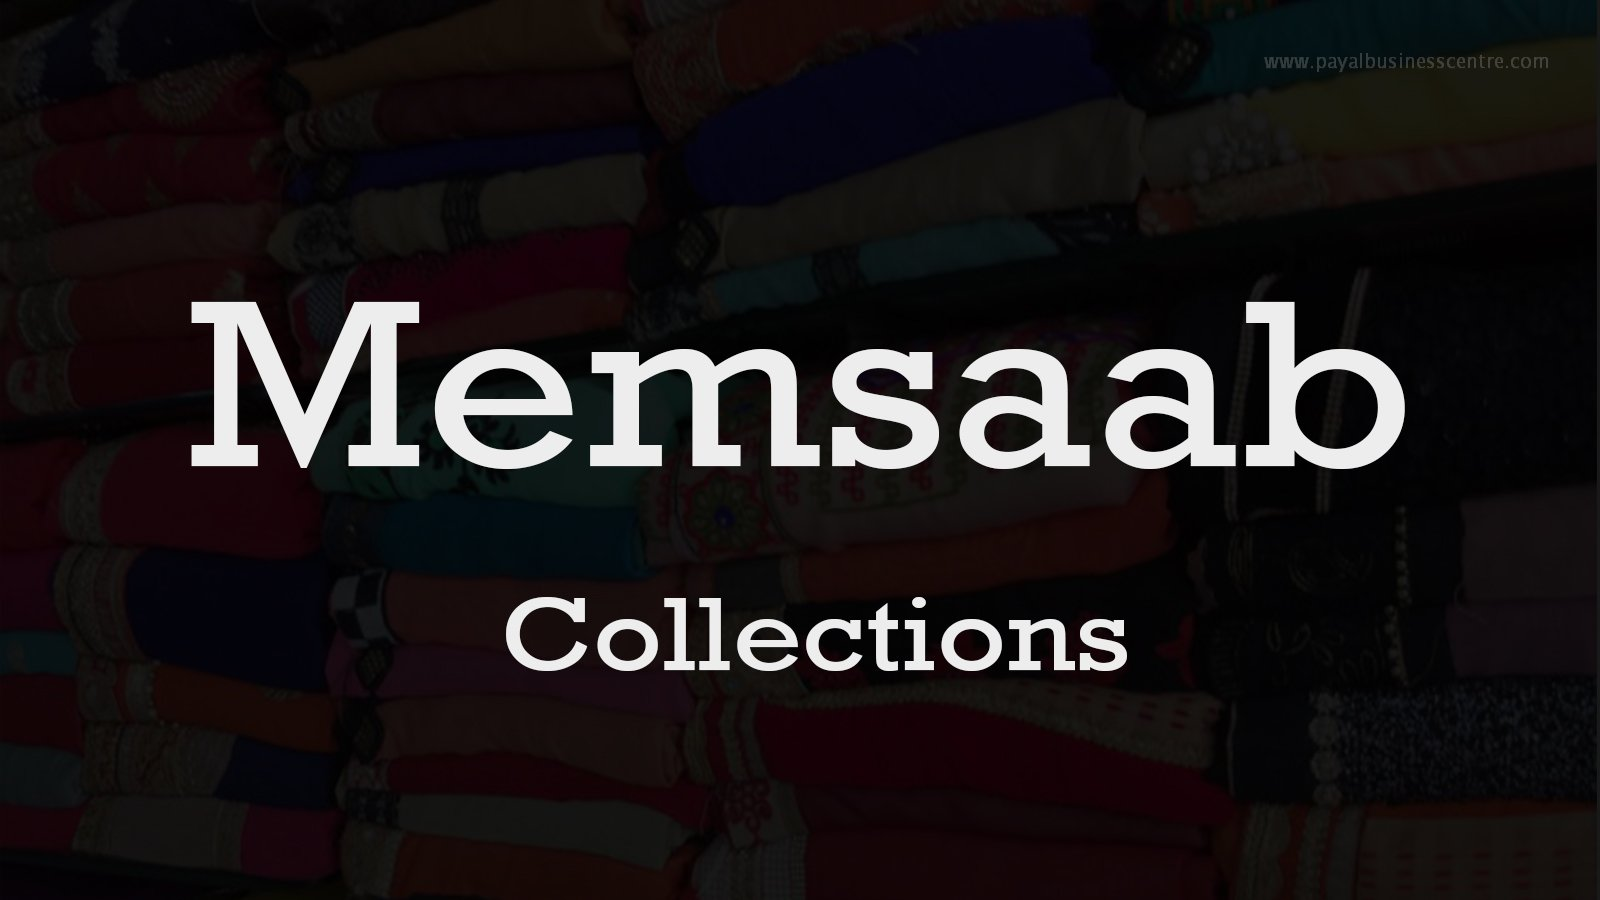 Memsaab Collections - Clothing - 8128 128 St